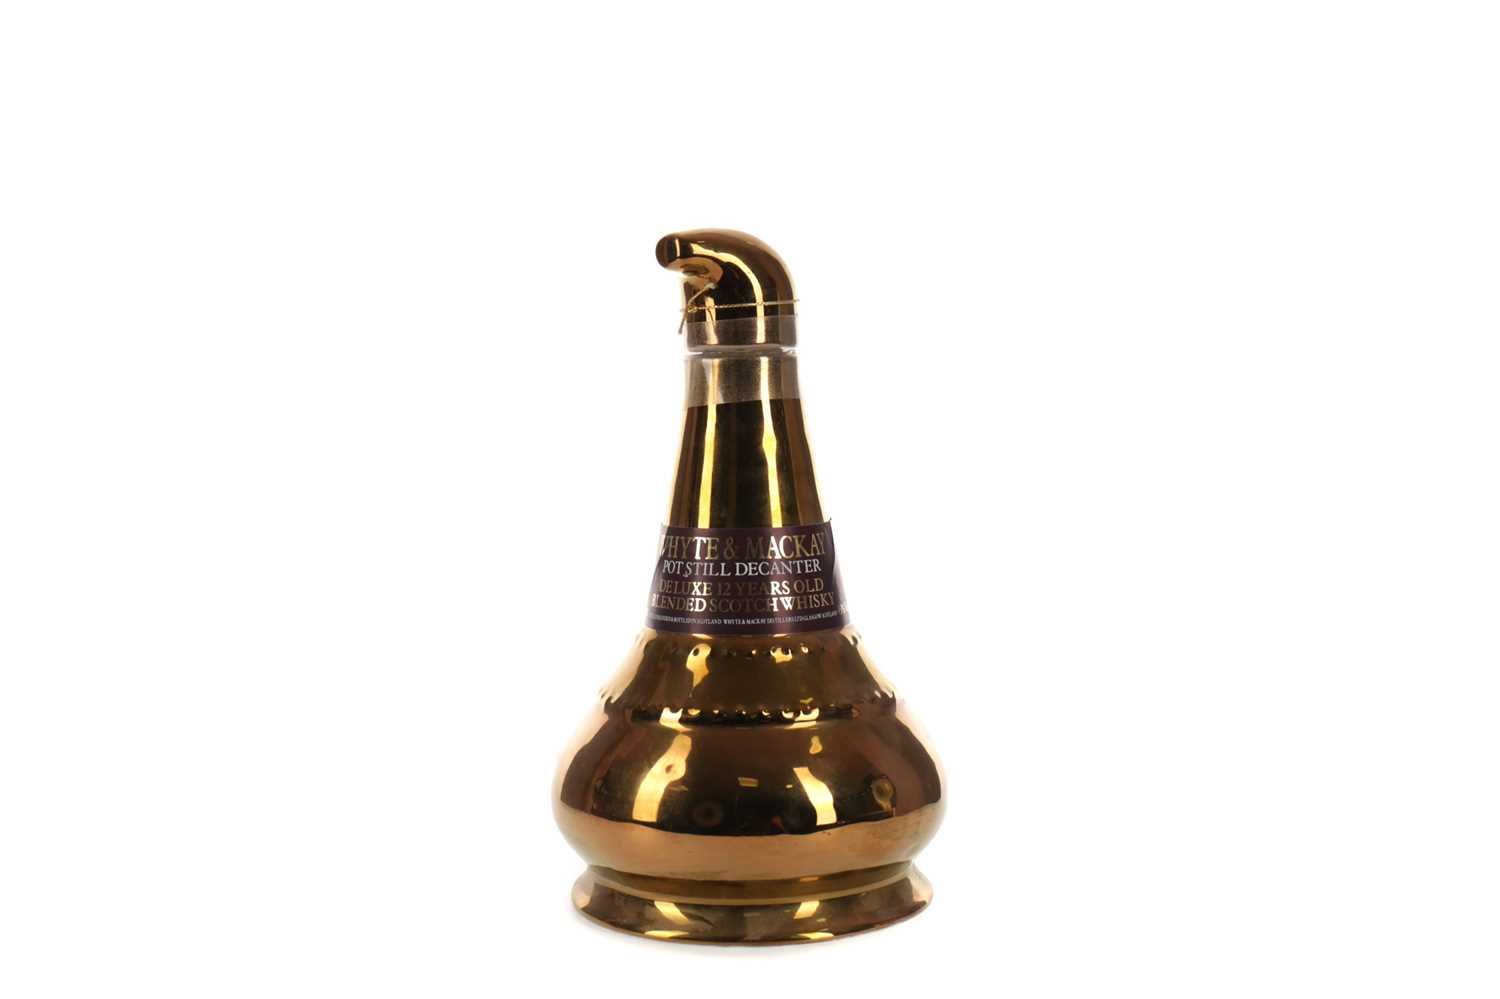 Lot 64 - WHYTE & MACKAY 12 YEARS OLD POT STILL DECANTER